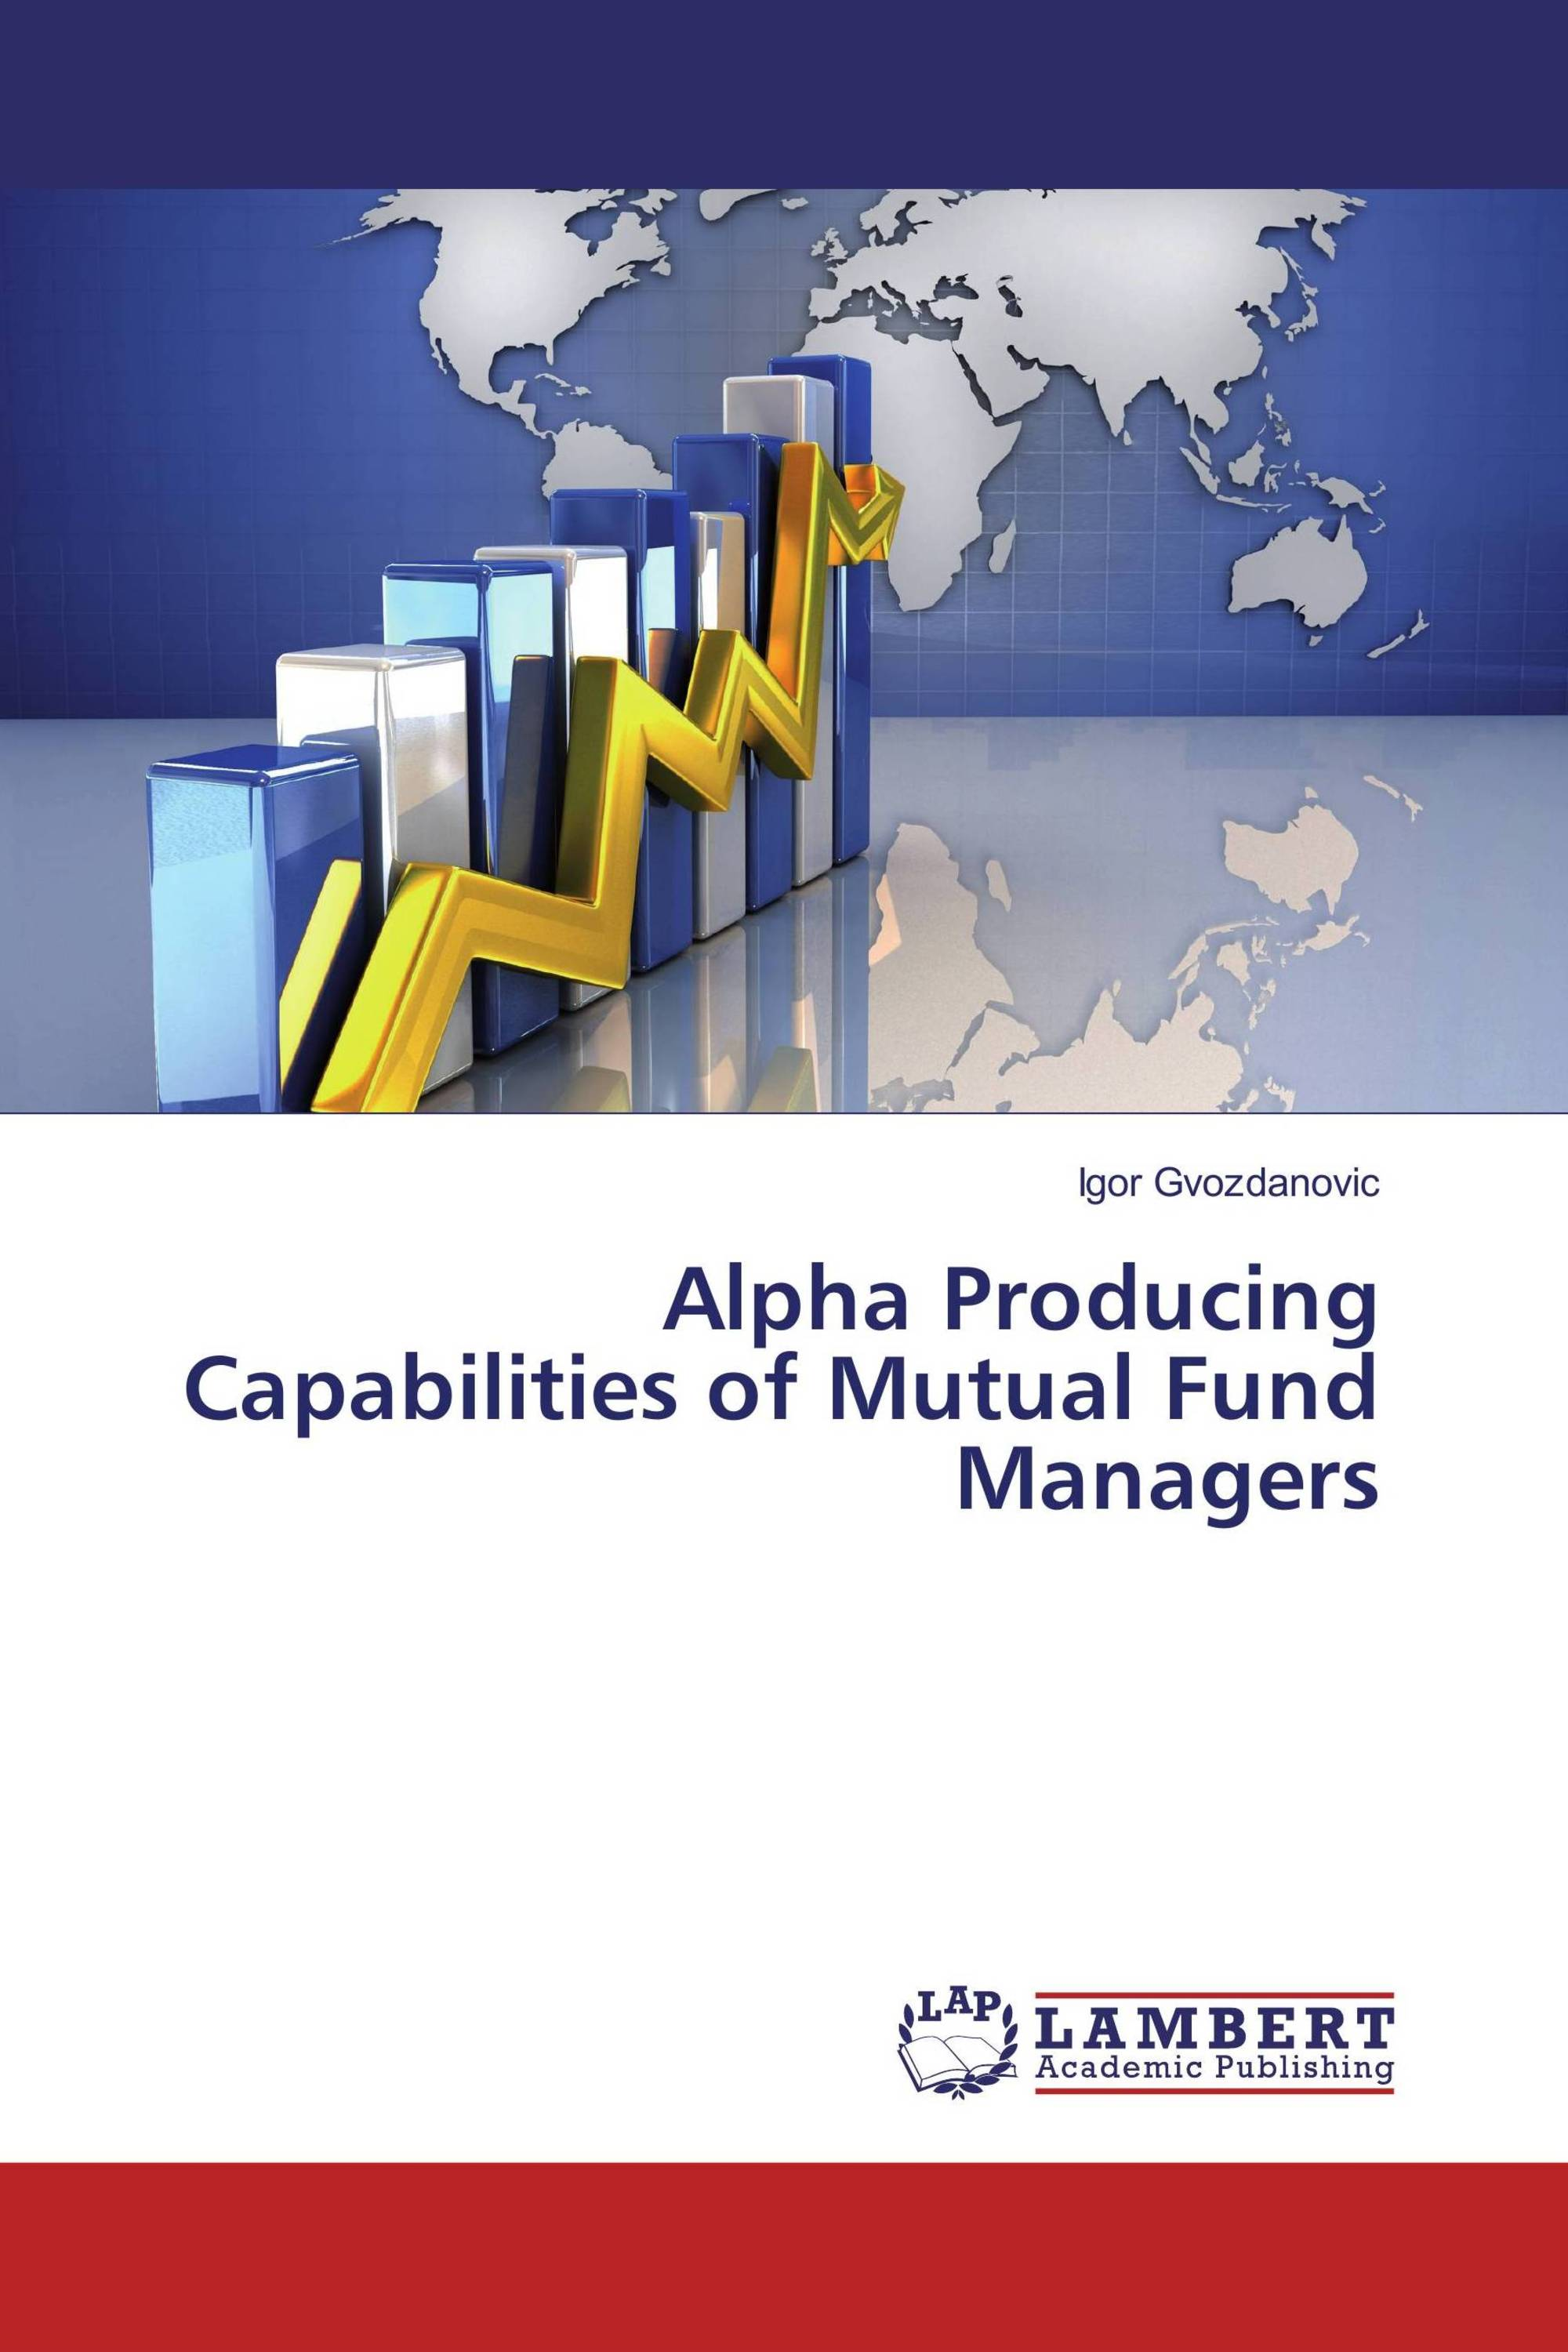 data analysis of a mutual fund General concepts of mutual fund analysis products mutual fund rating services are good data collectors but lack any real sophistication in fund analysis.